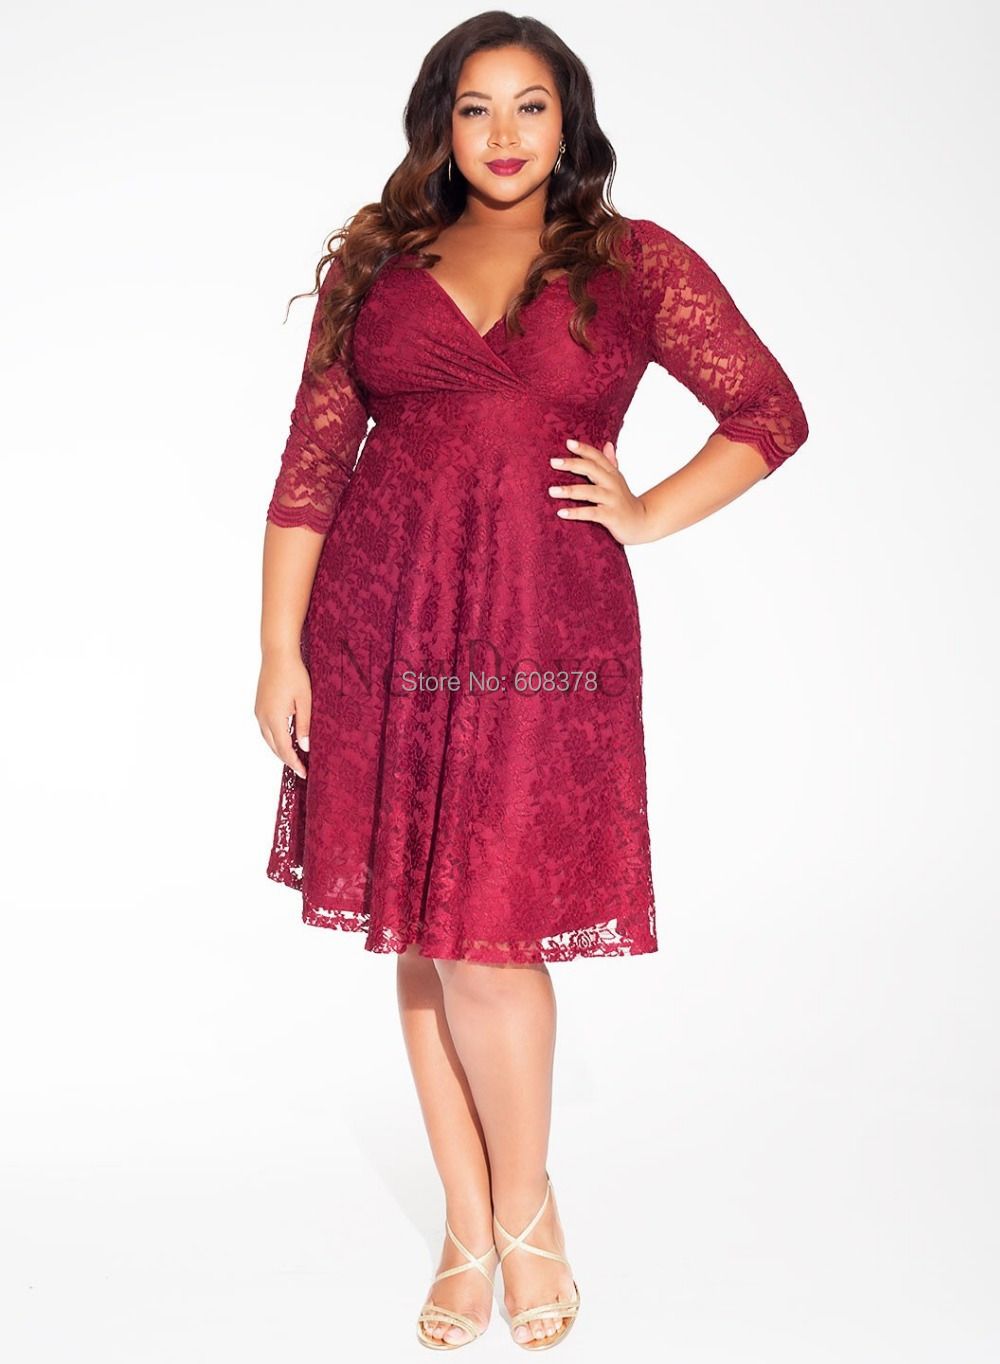 Plus Size Dresses Promgirl Anlis